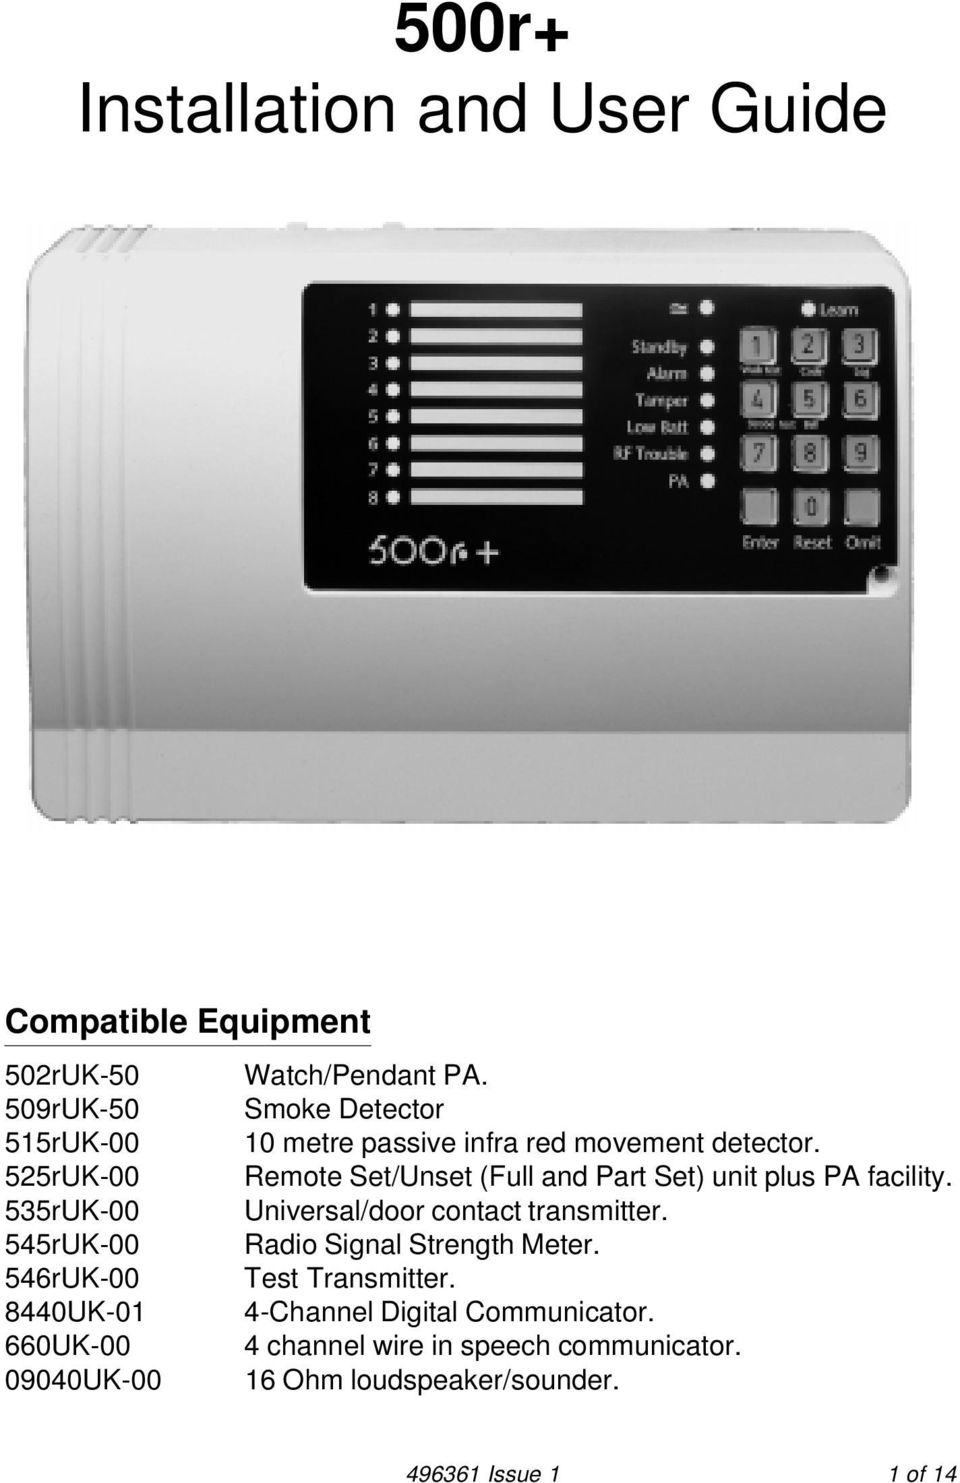 525rUK-00 Remote Set/Unset (Full and Part Set) unit plus PA facility. 535rUK-00 Universal/door contact transmitter.